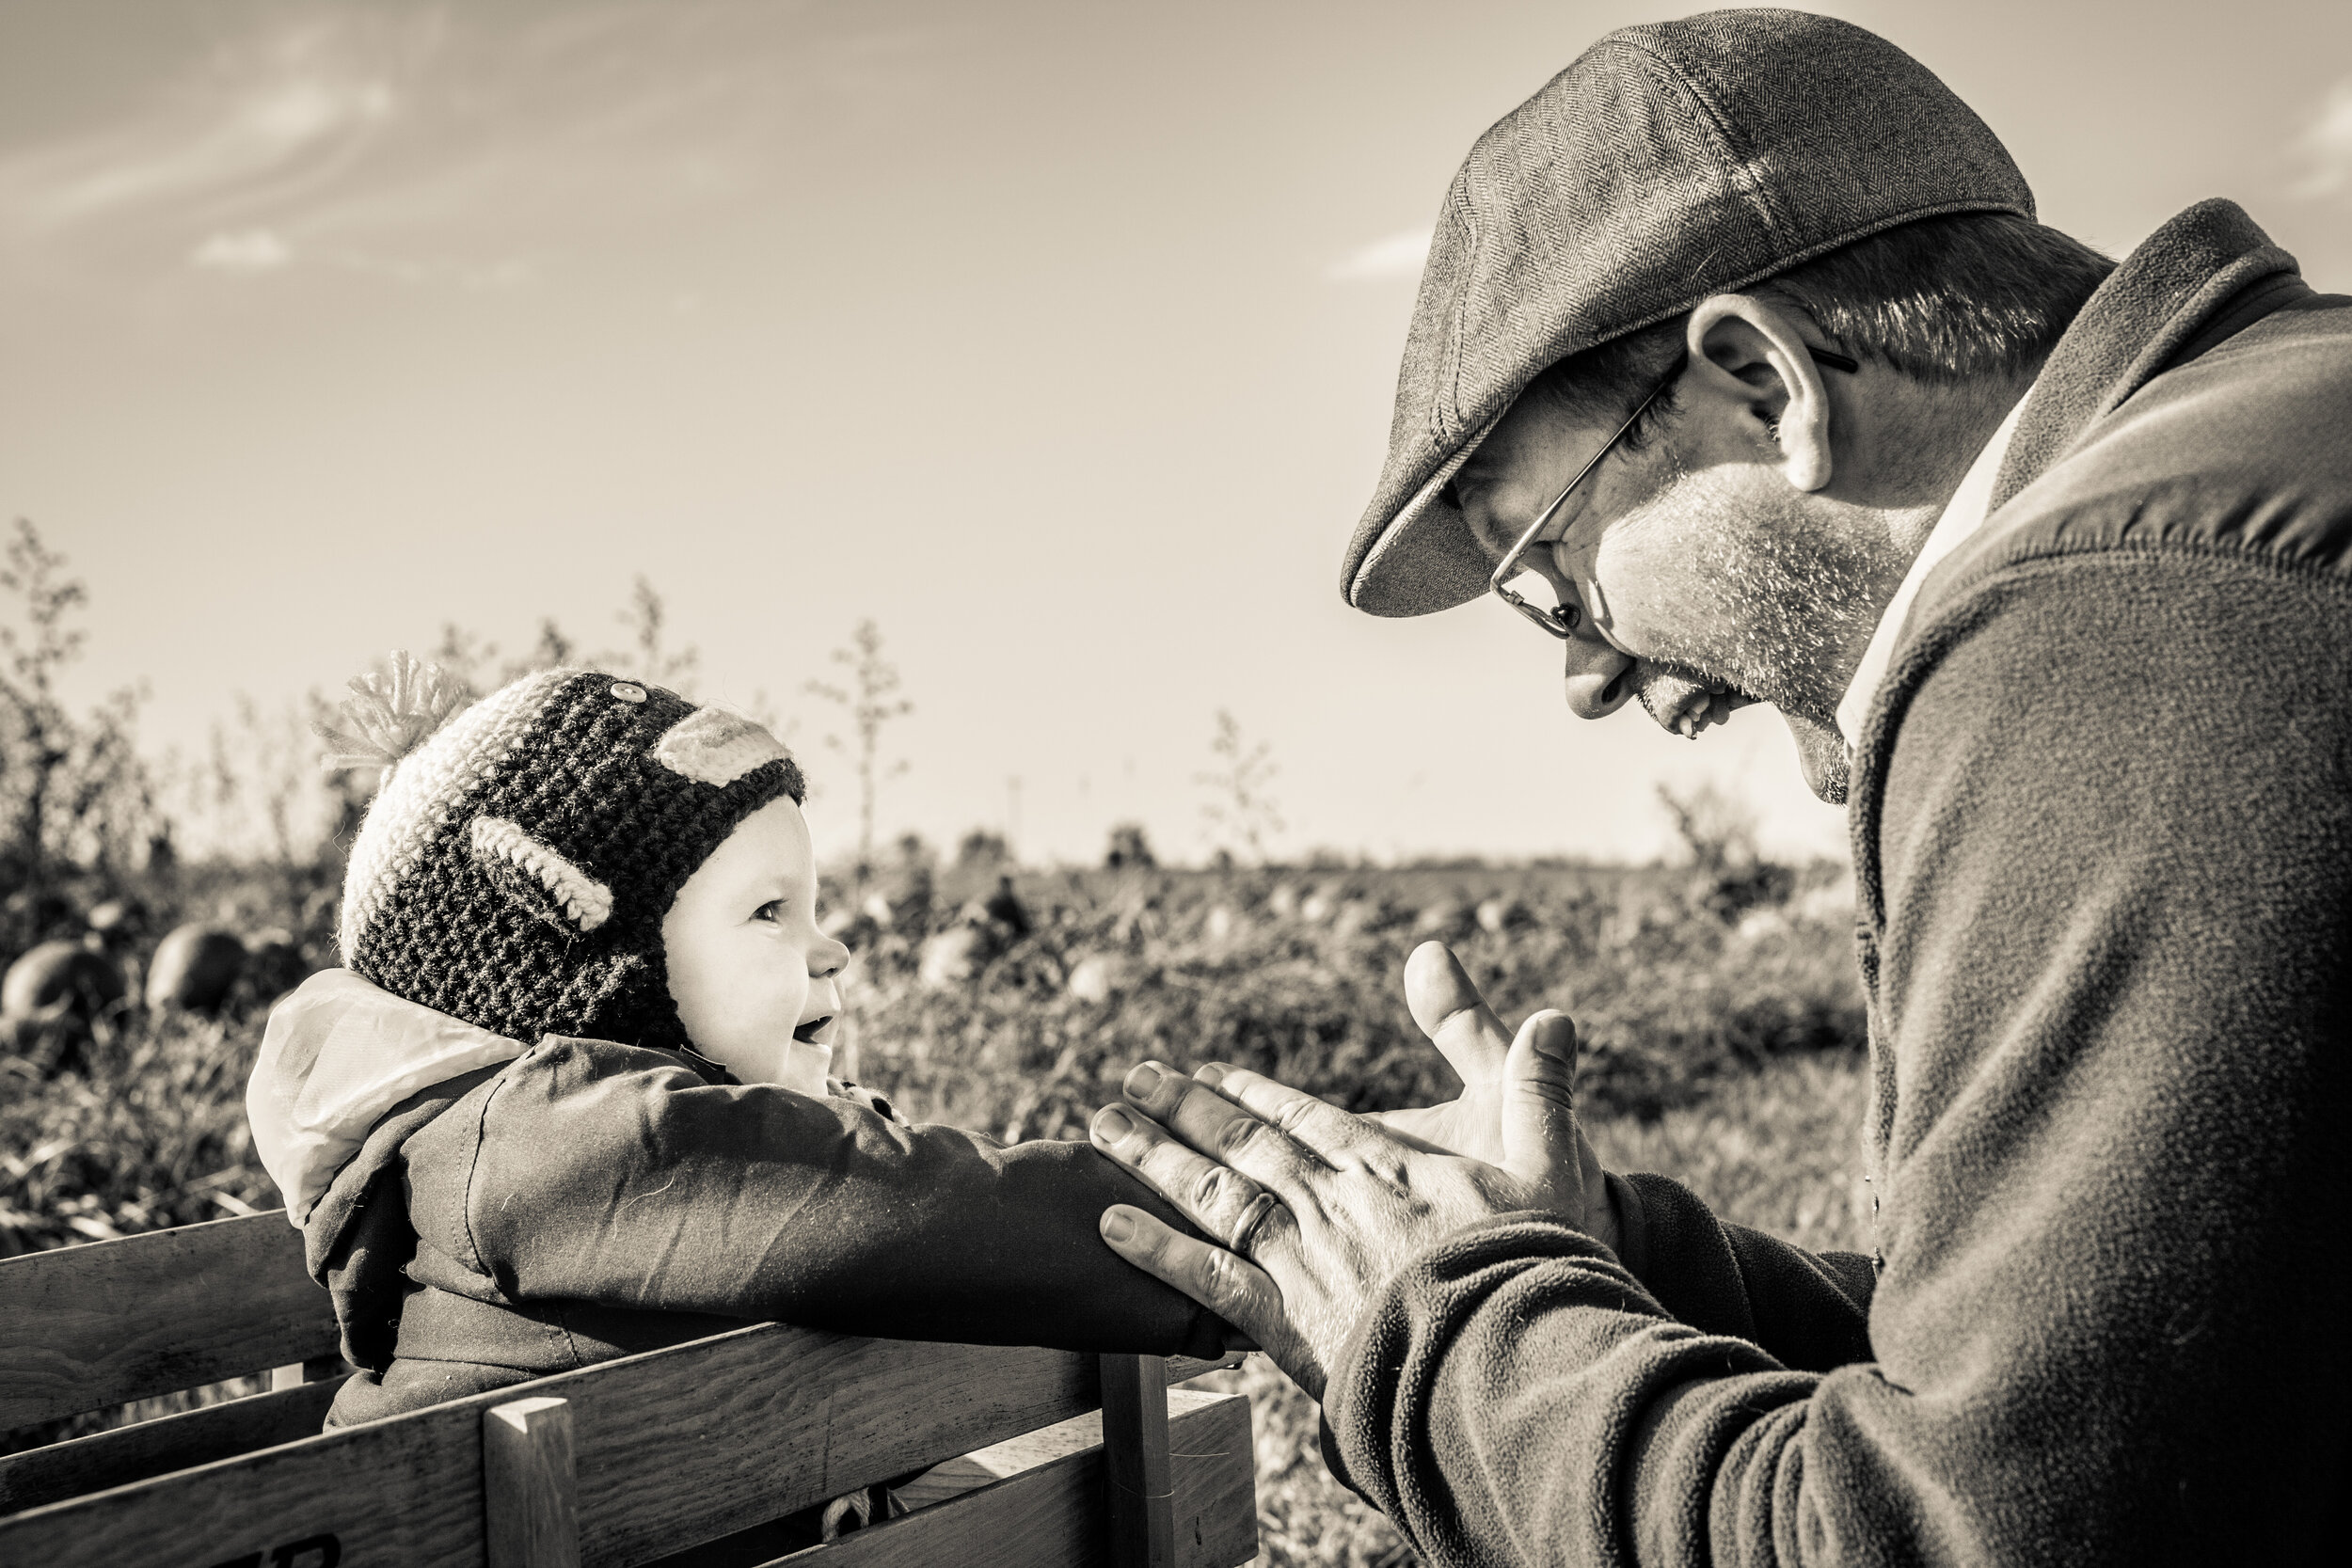 Father-Son-Play-Toddler-Midwest-cute-Family-Photography-by-Ranae-Keane.jpg